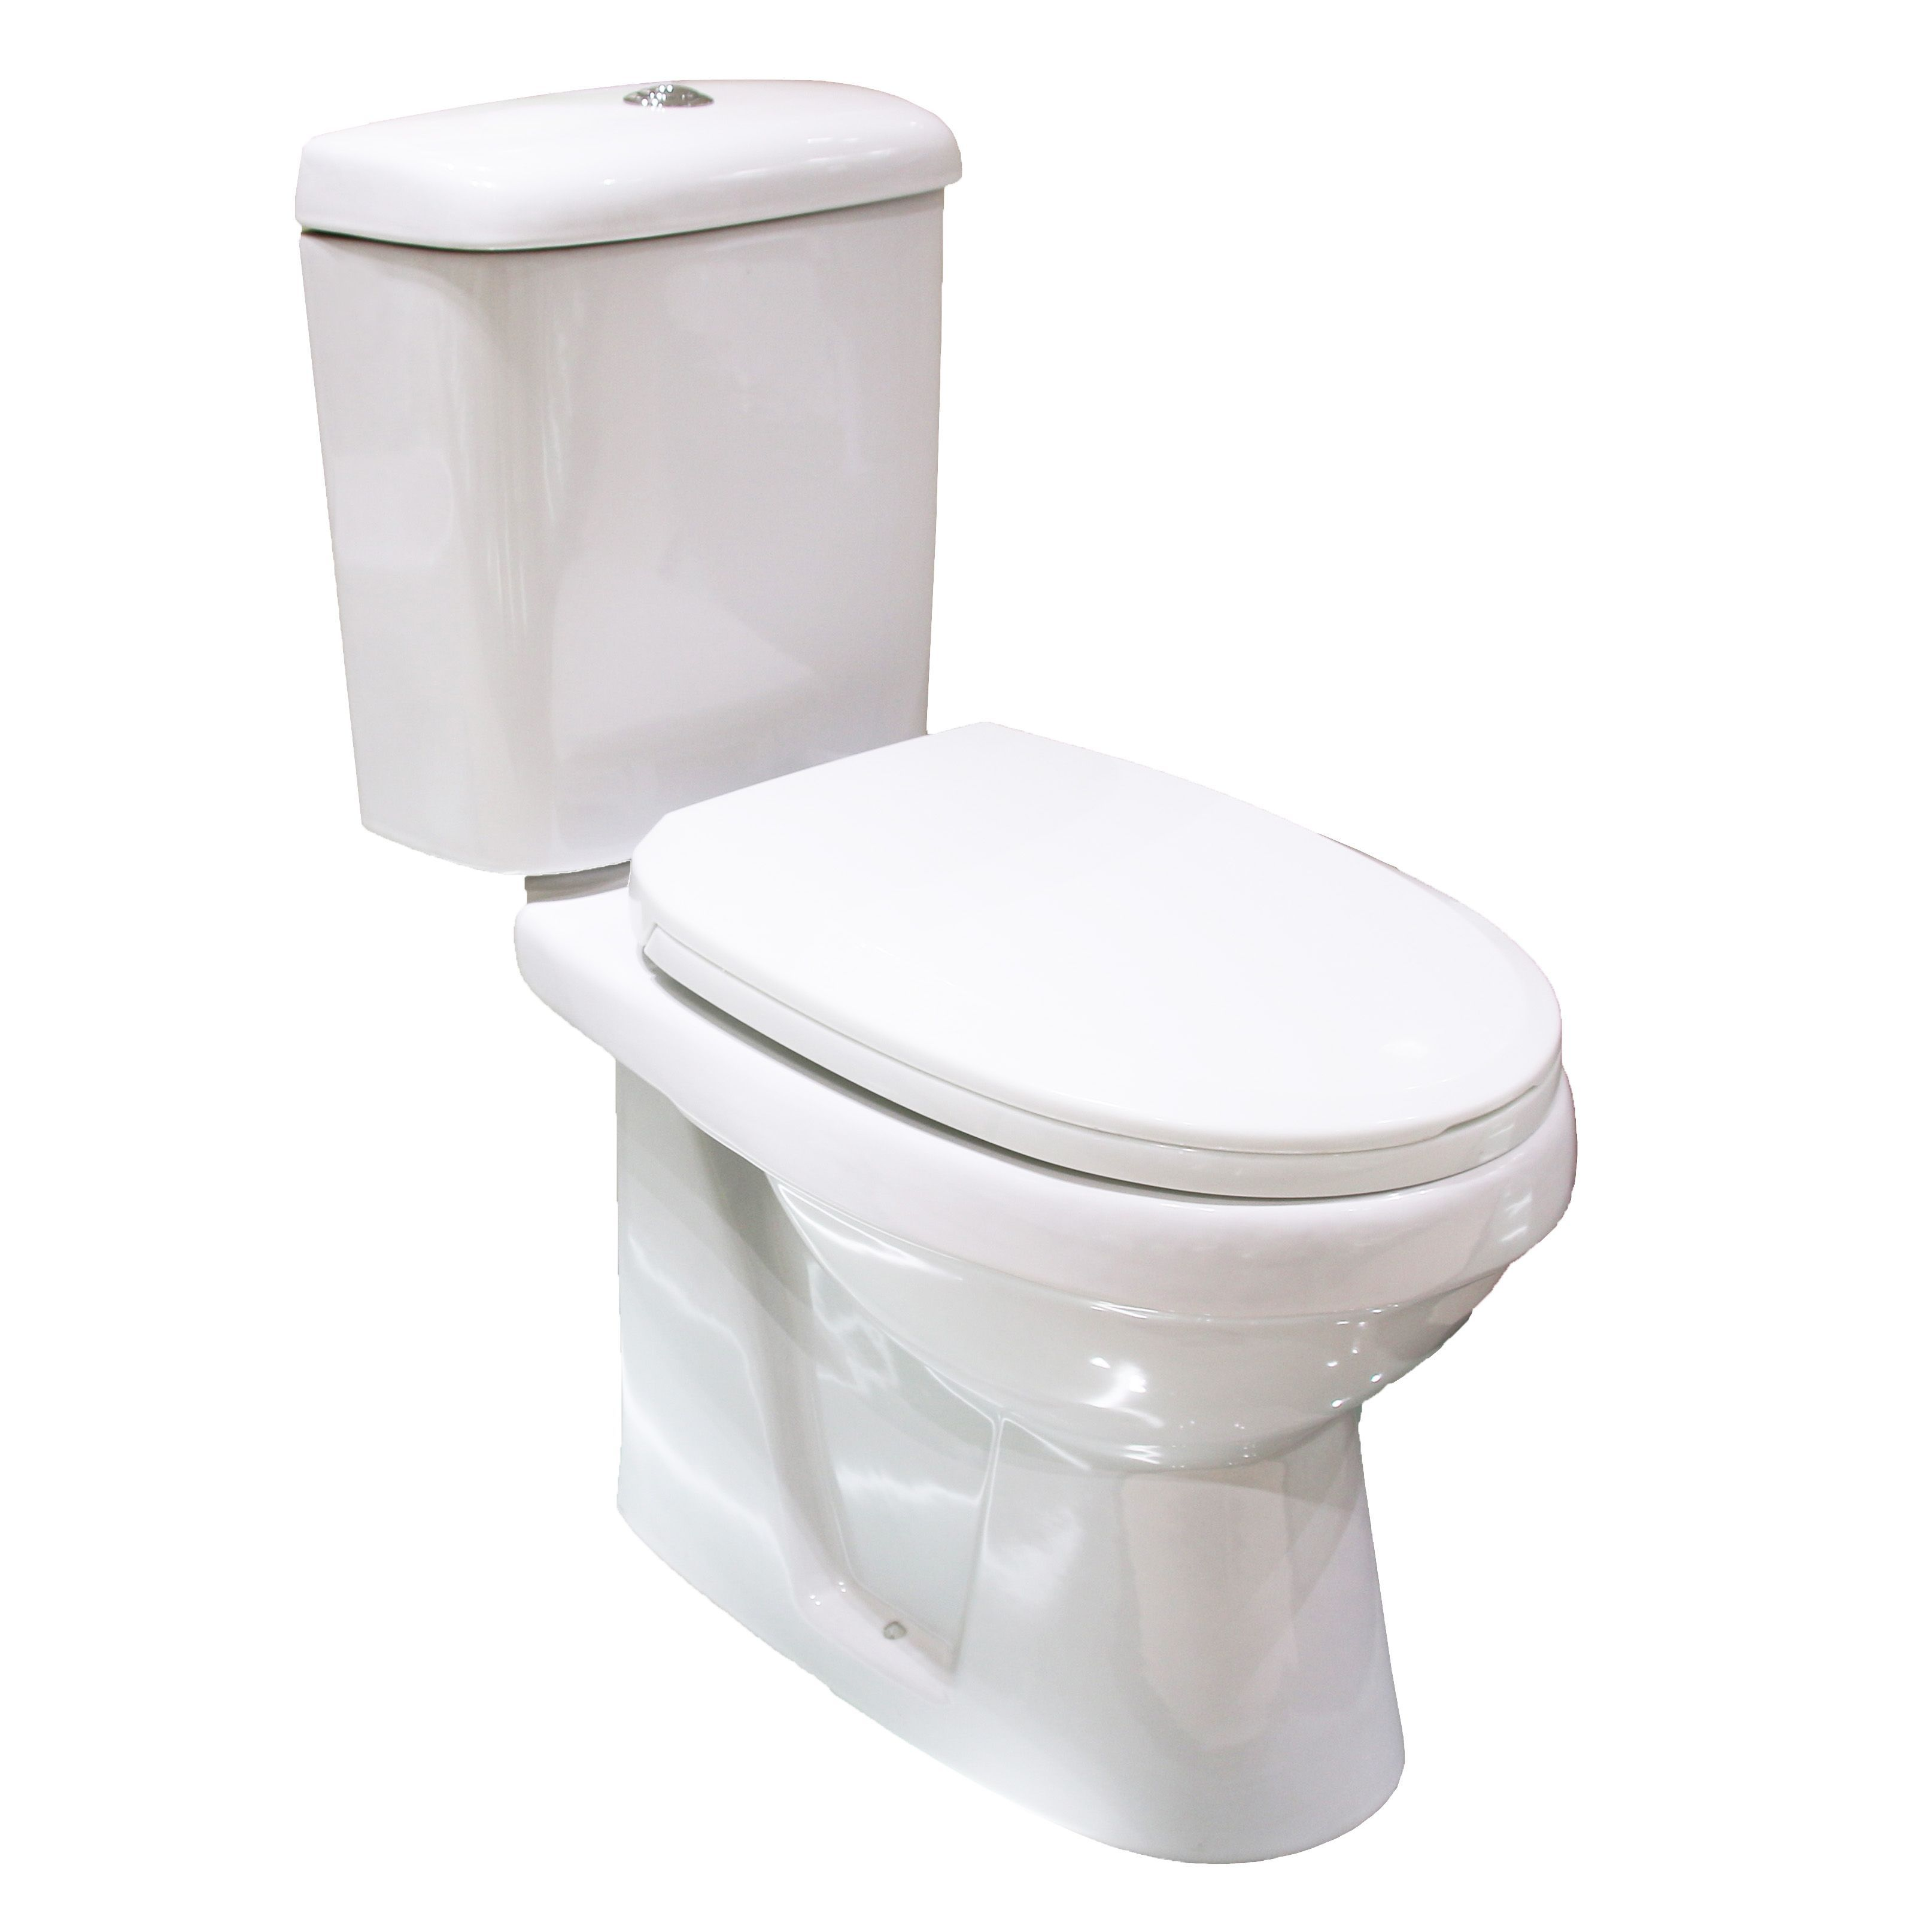 Cooke & Lewis Duetto Close Coupled Toilet with Integrated Basin with